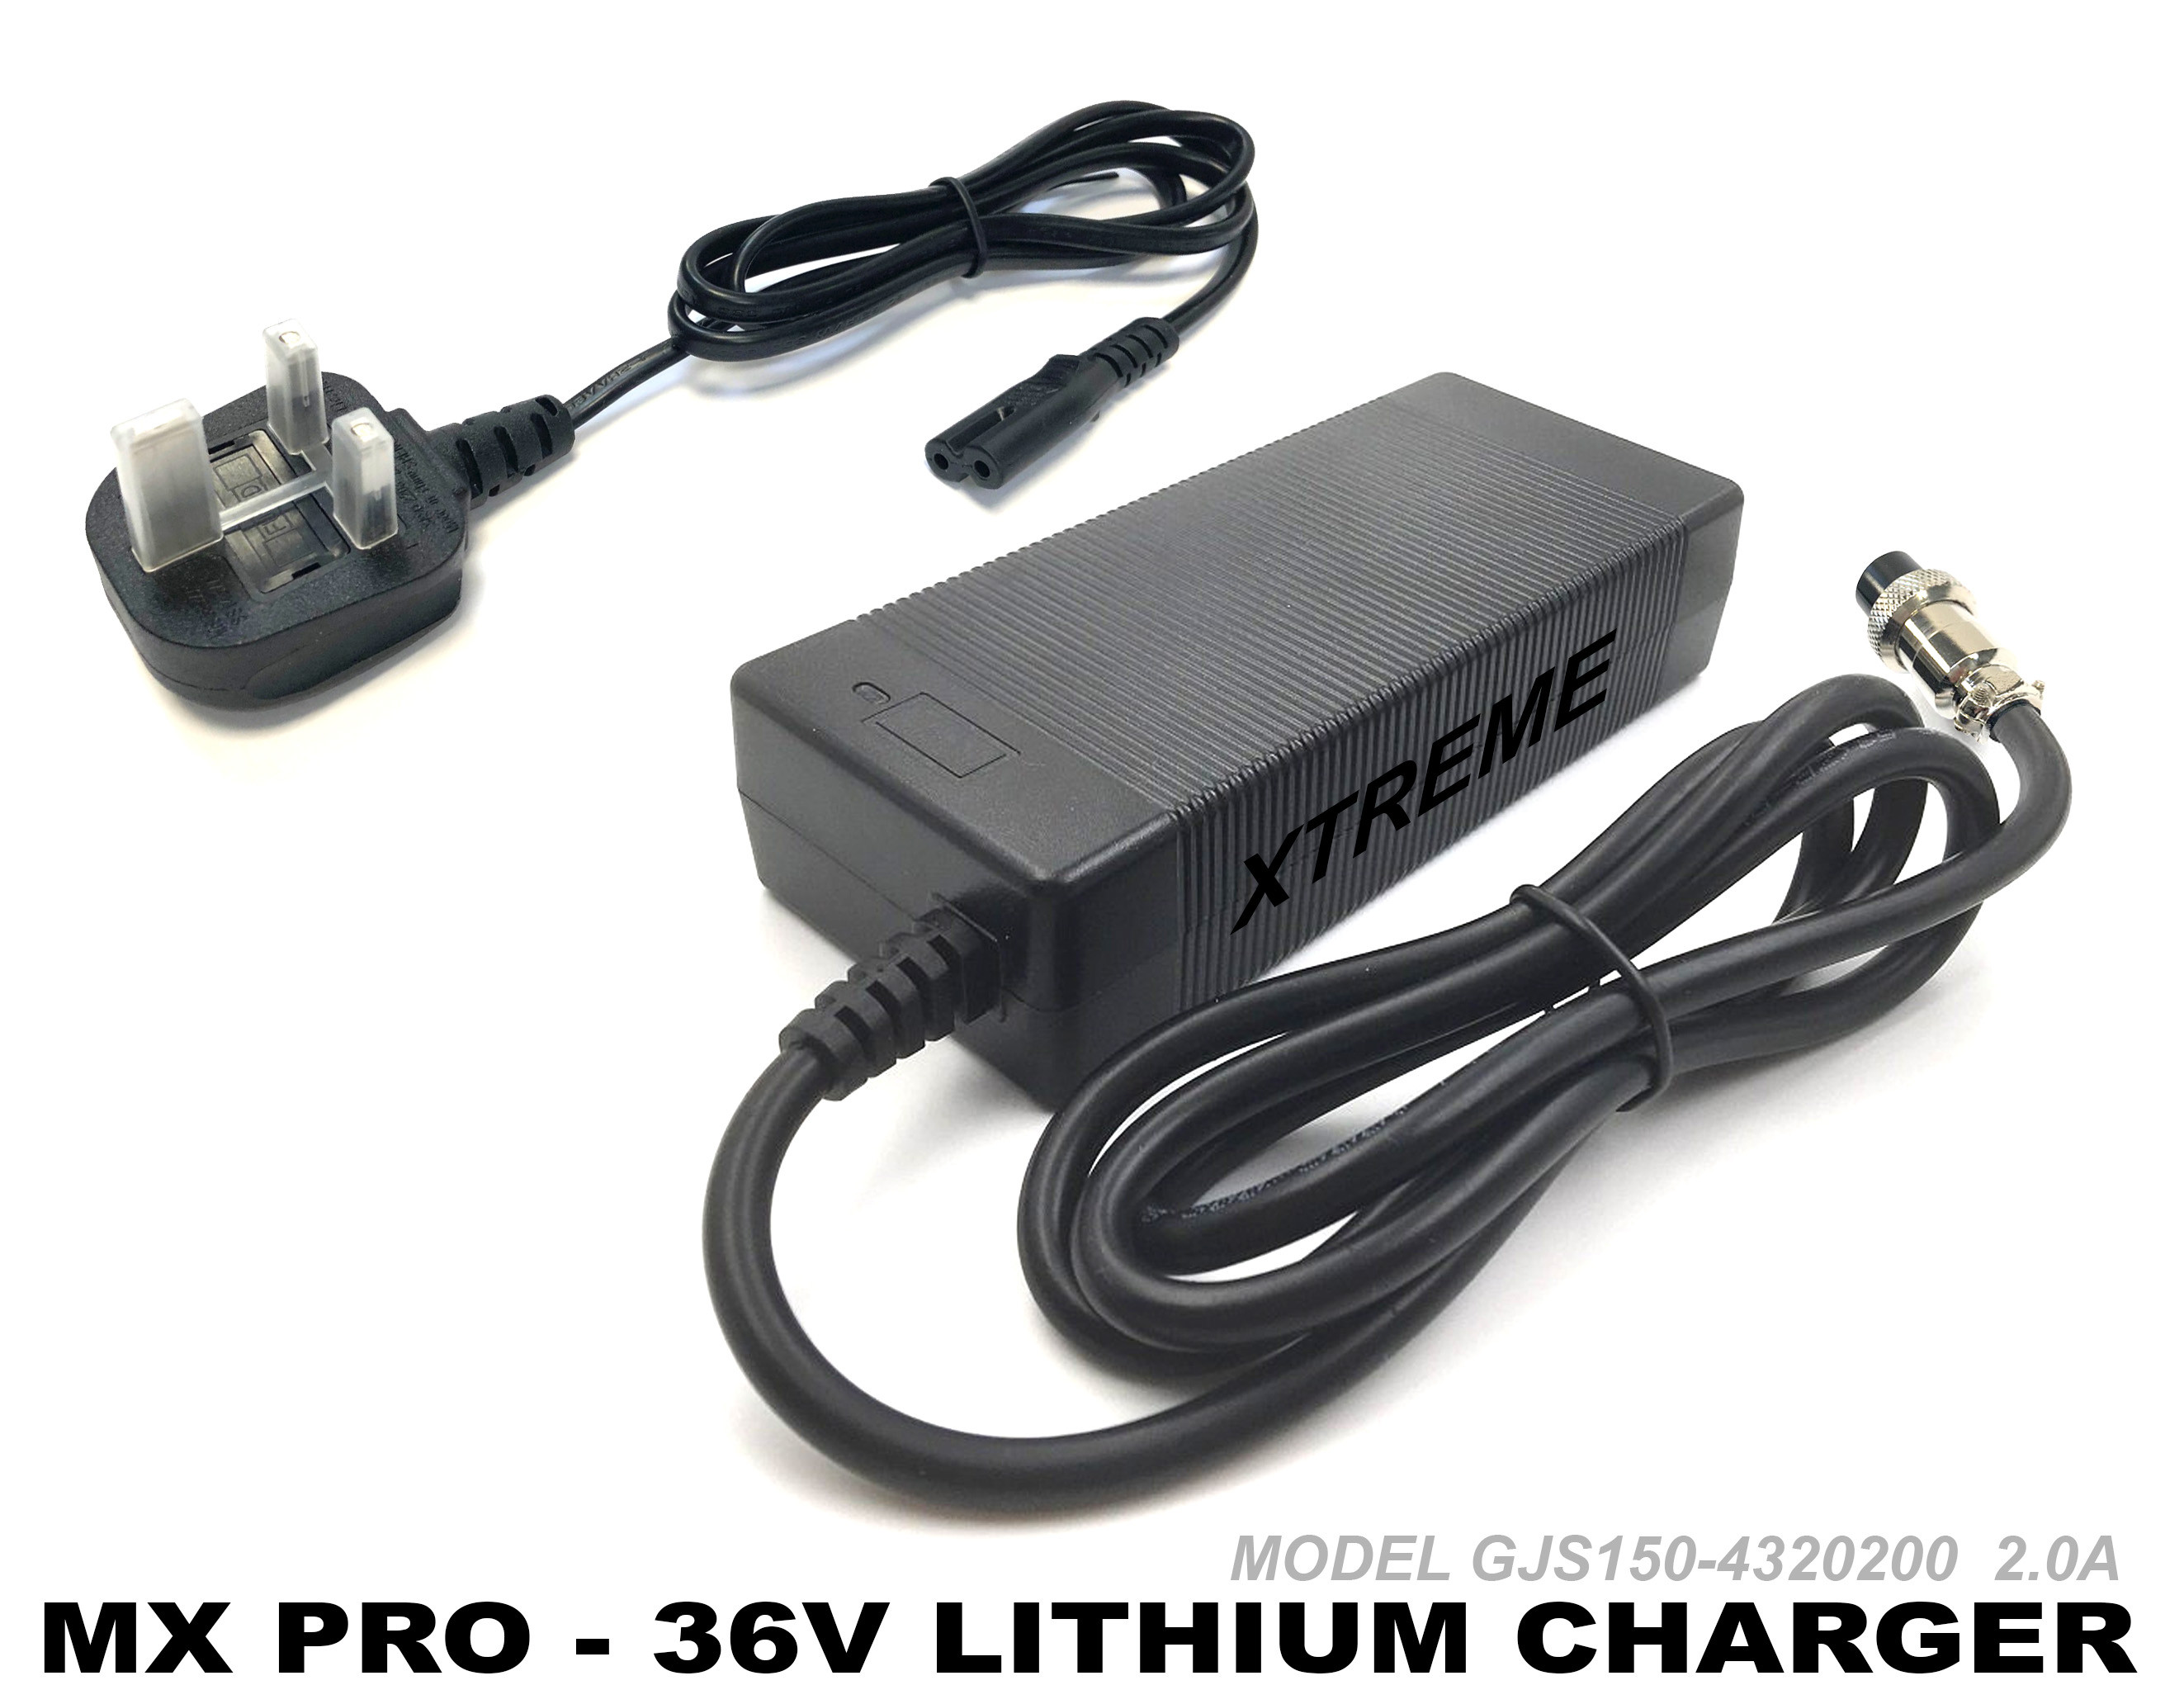 XTREME ELECTRIC XTM MX-PRO 36V 1100W LITHIUM BATTERY CHARGER